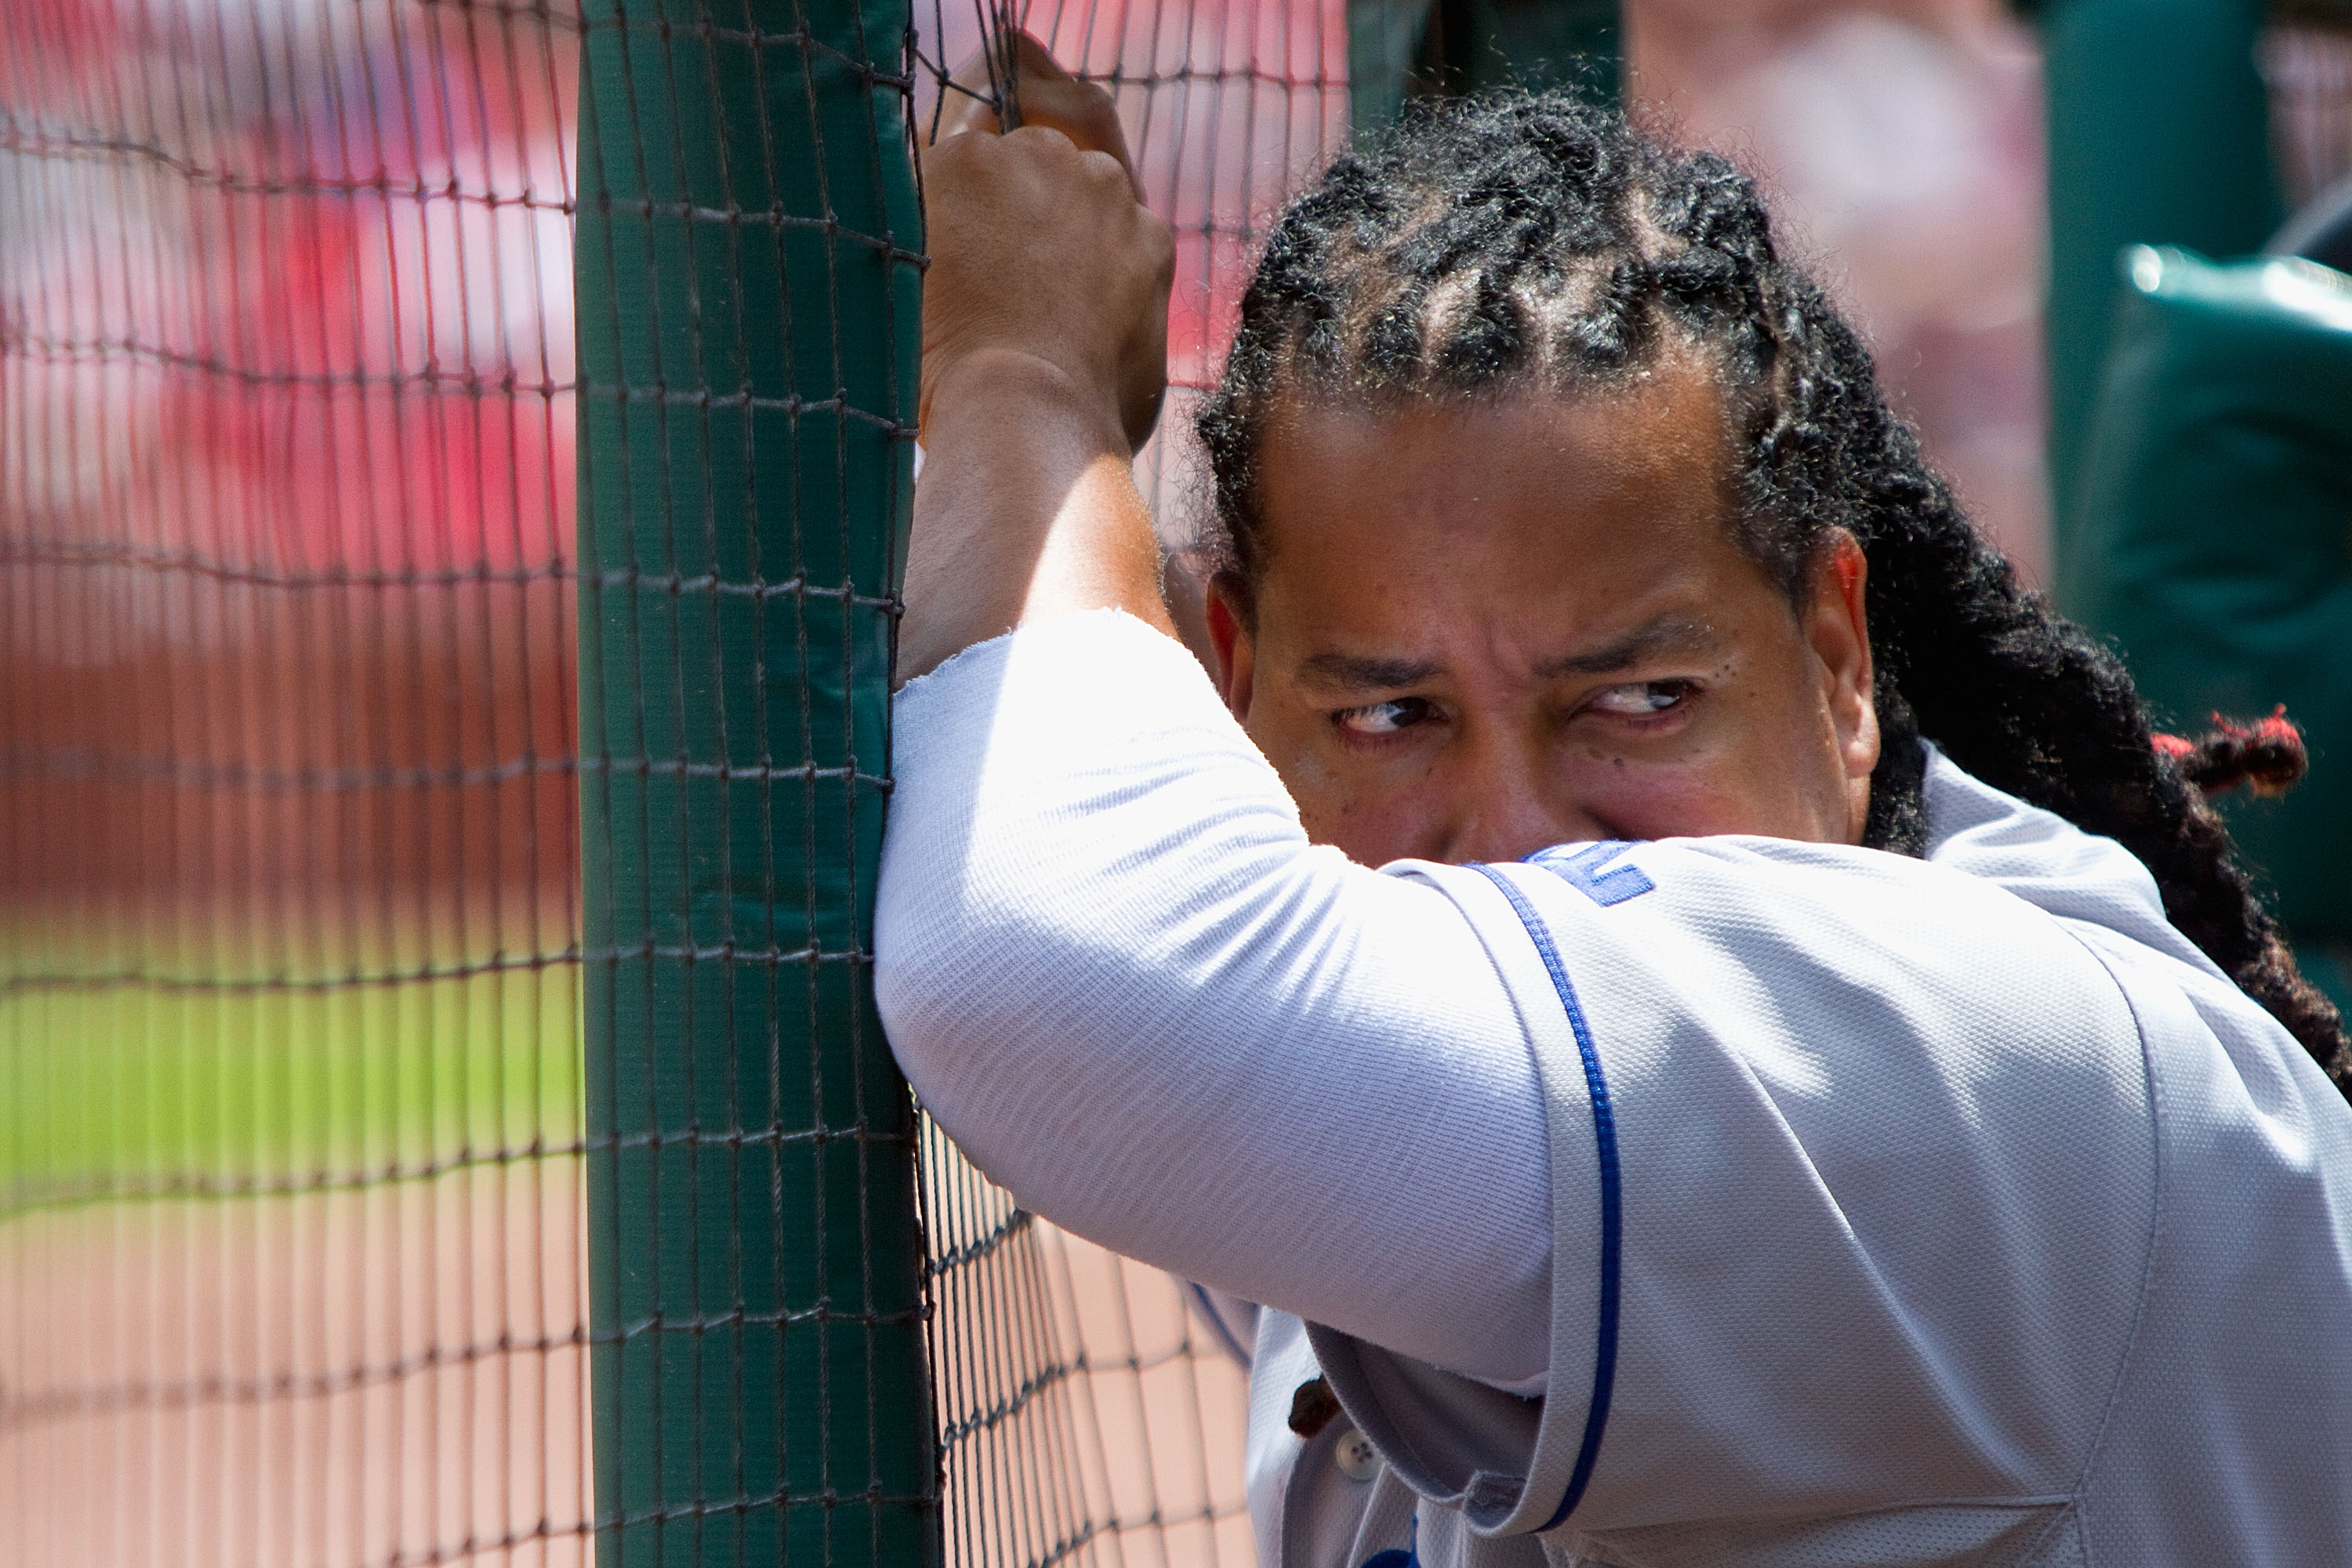 ST. LOUIS - JULY 18: Manny Ramirez #99 of the Los Angeles Dodgers looks on from the dugout against the St. Louis Cardinals at Busch Stadium on July 18, 2010 in St. Louis, Missouri.  The Cardinals beat the Dodgers 5-4.  (Photo by Dilip Vishwanat/Getty Imag